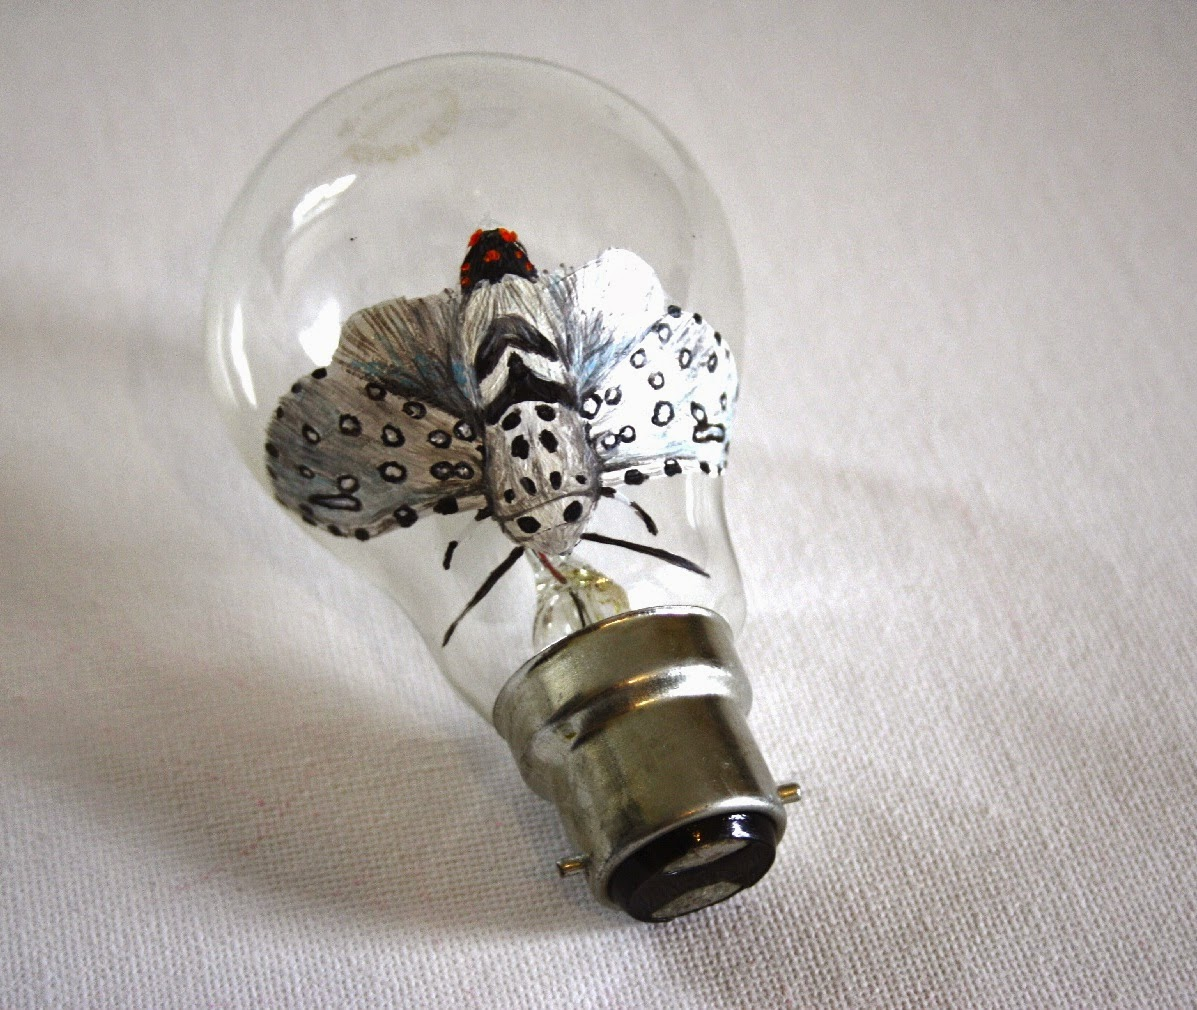 Light Bulb Artwork Ideas